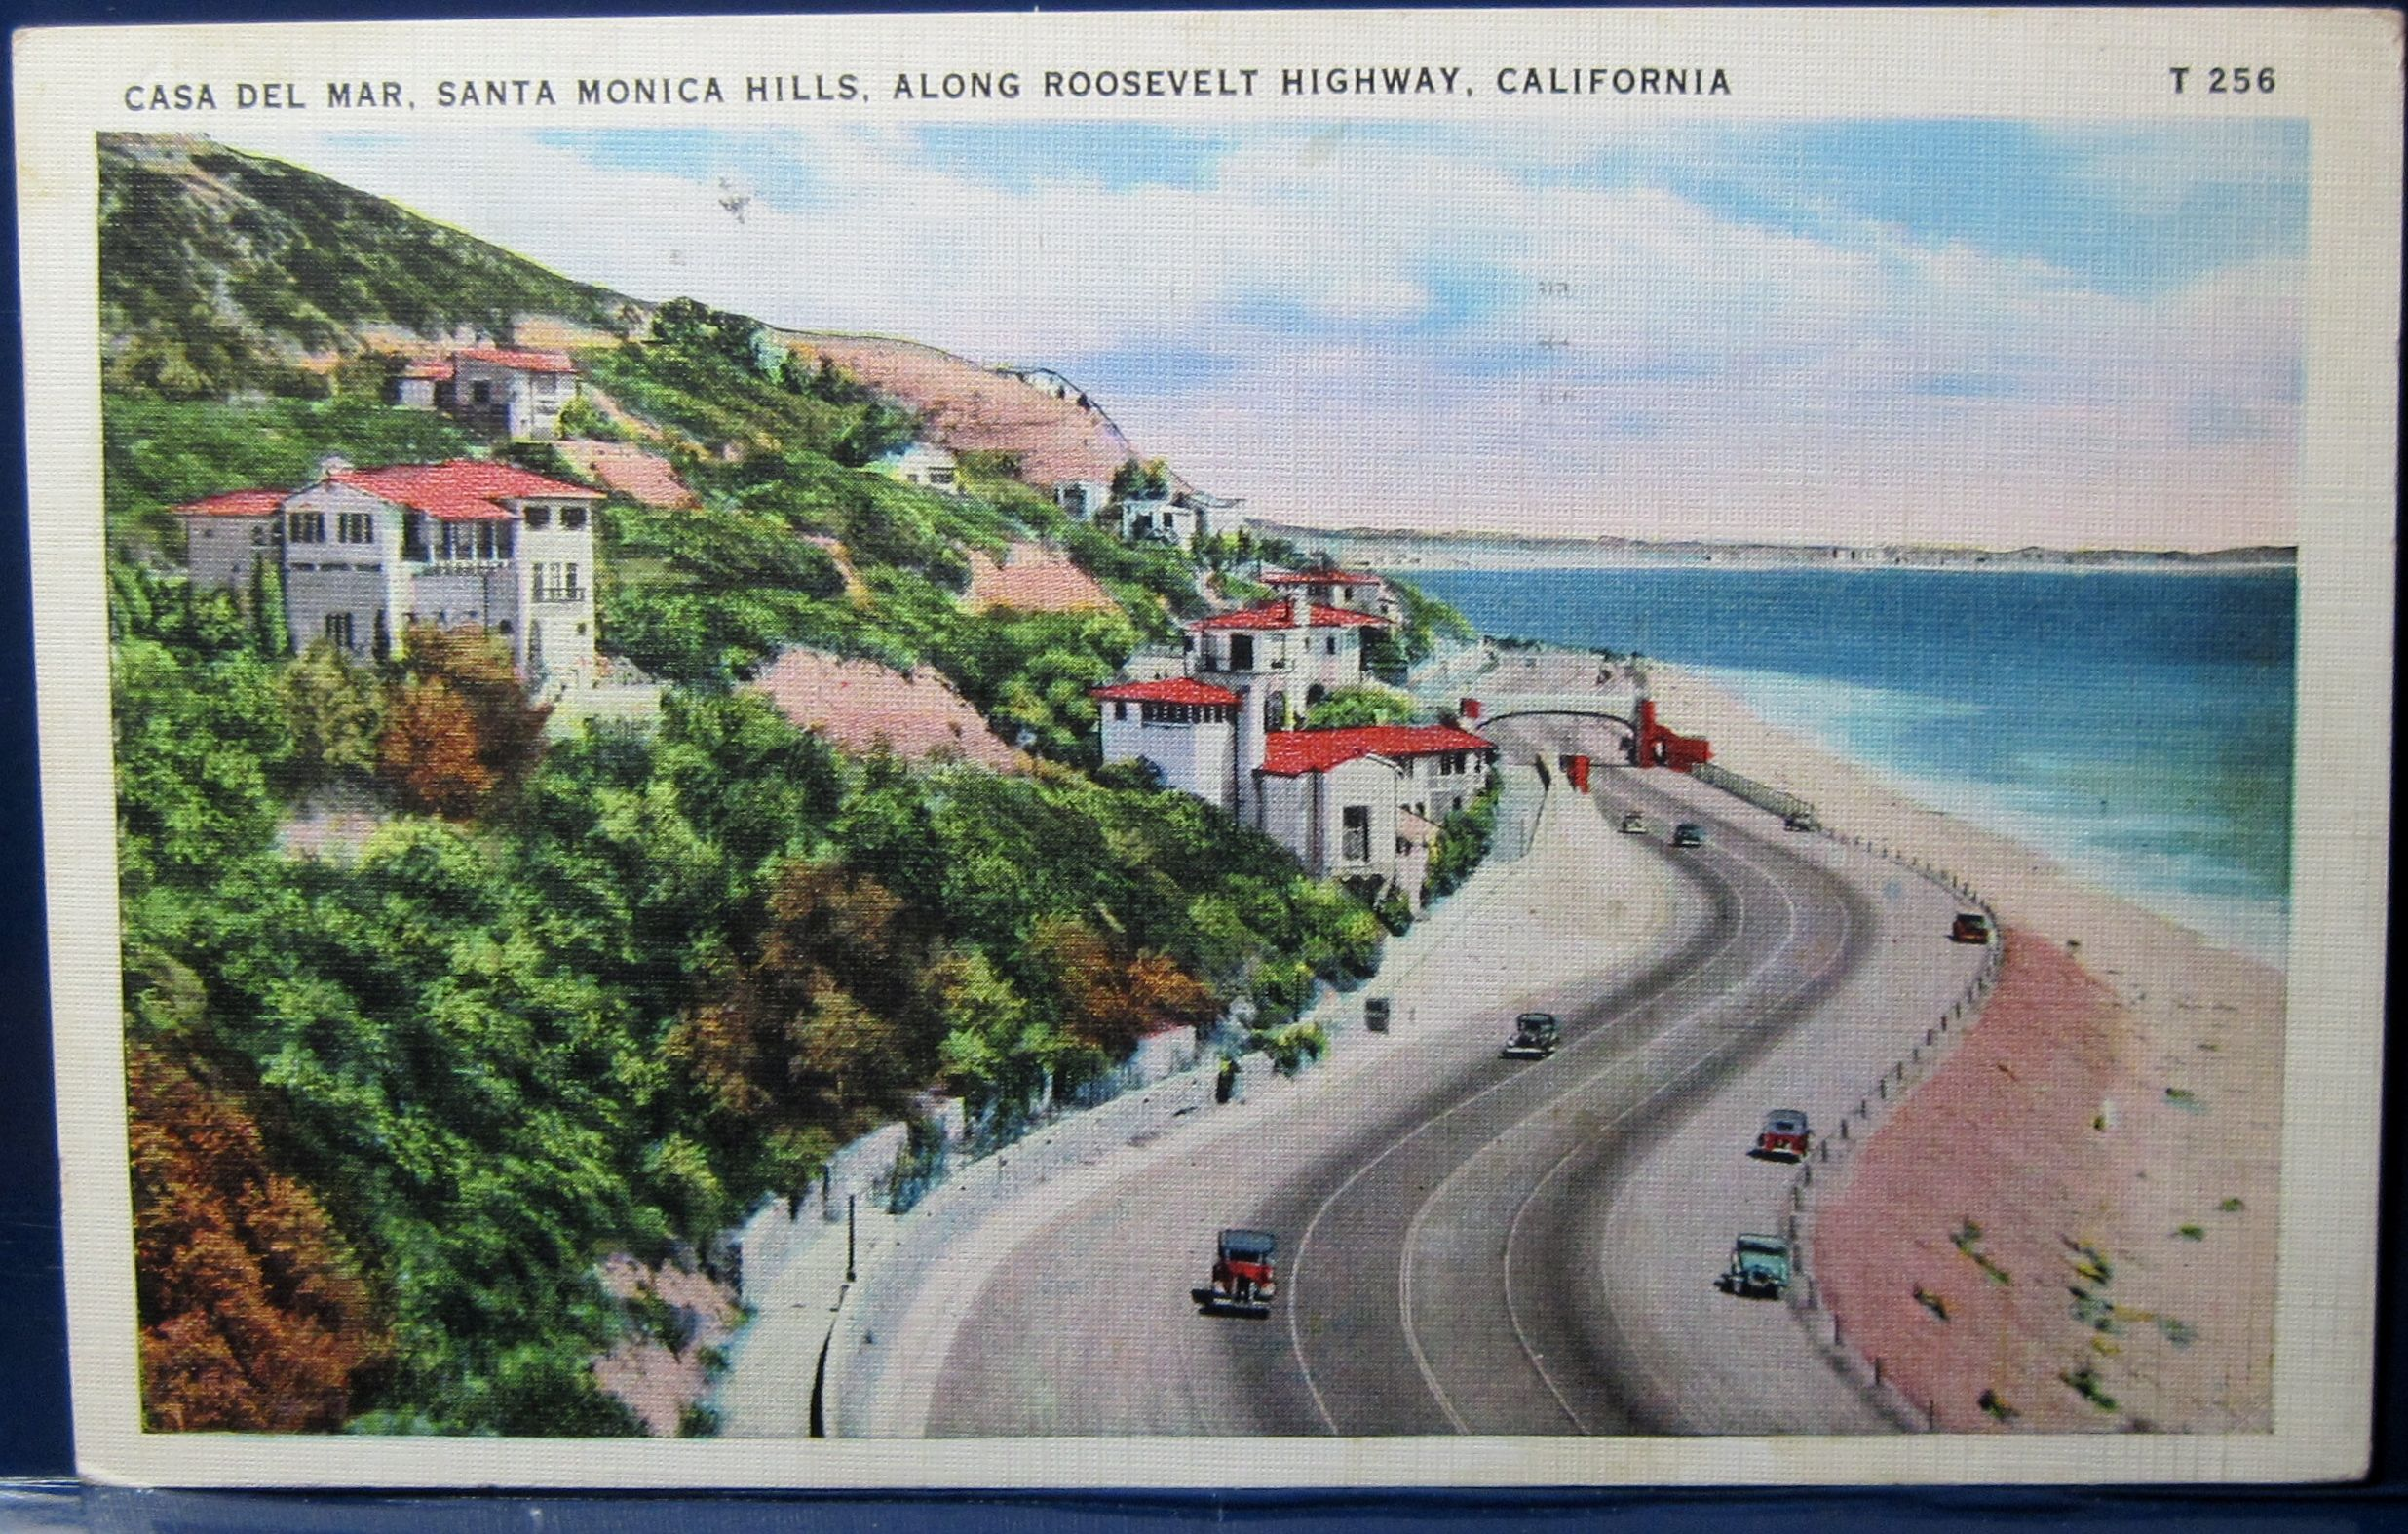 Castellammare pacific palisades california arch rock for Where is pacific palisades